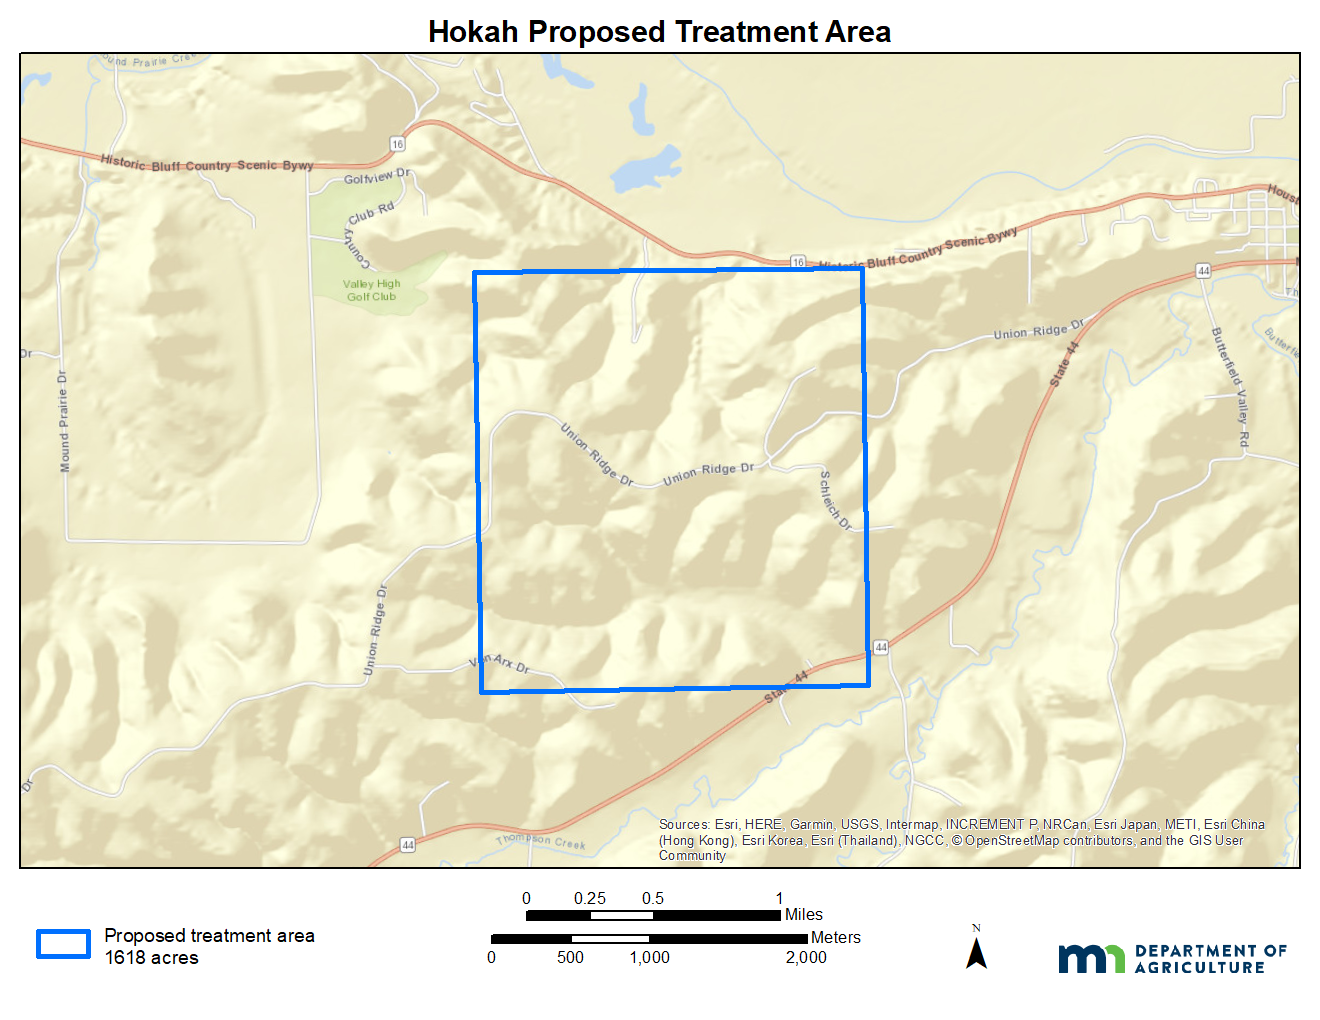 A map of the Hokah area proposed gypsy moth treatment